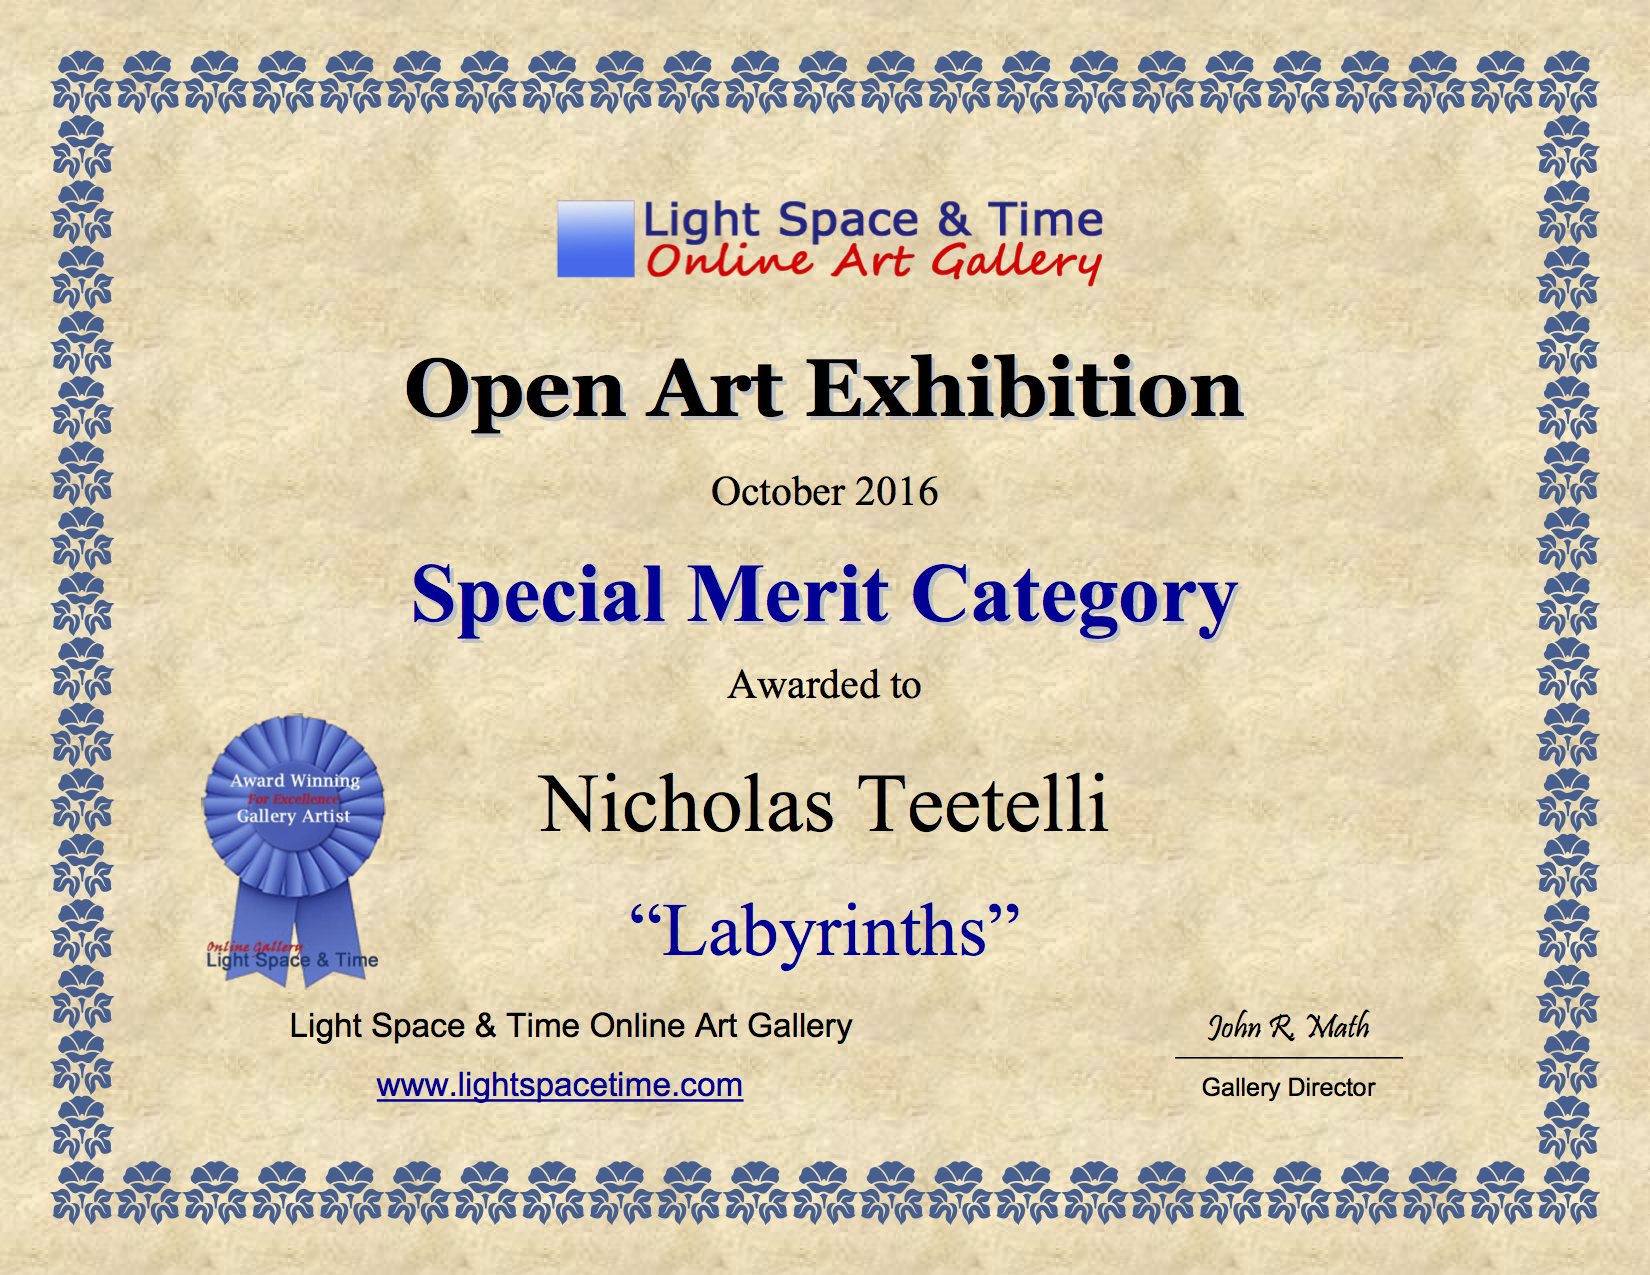 2016-10 LS&T Art Exhibition - Open - Special Recognition - Labyrinths.png